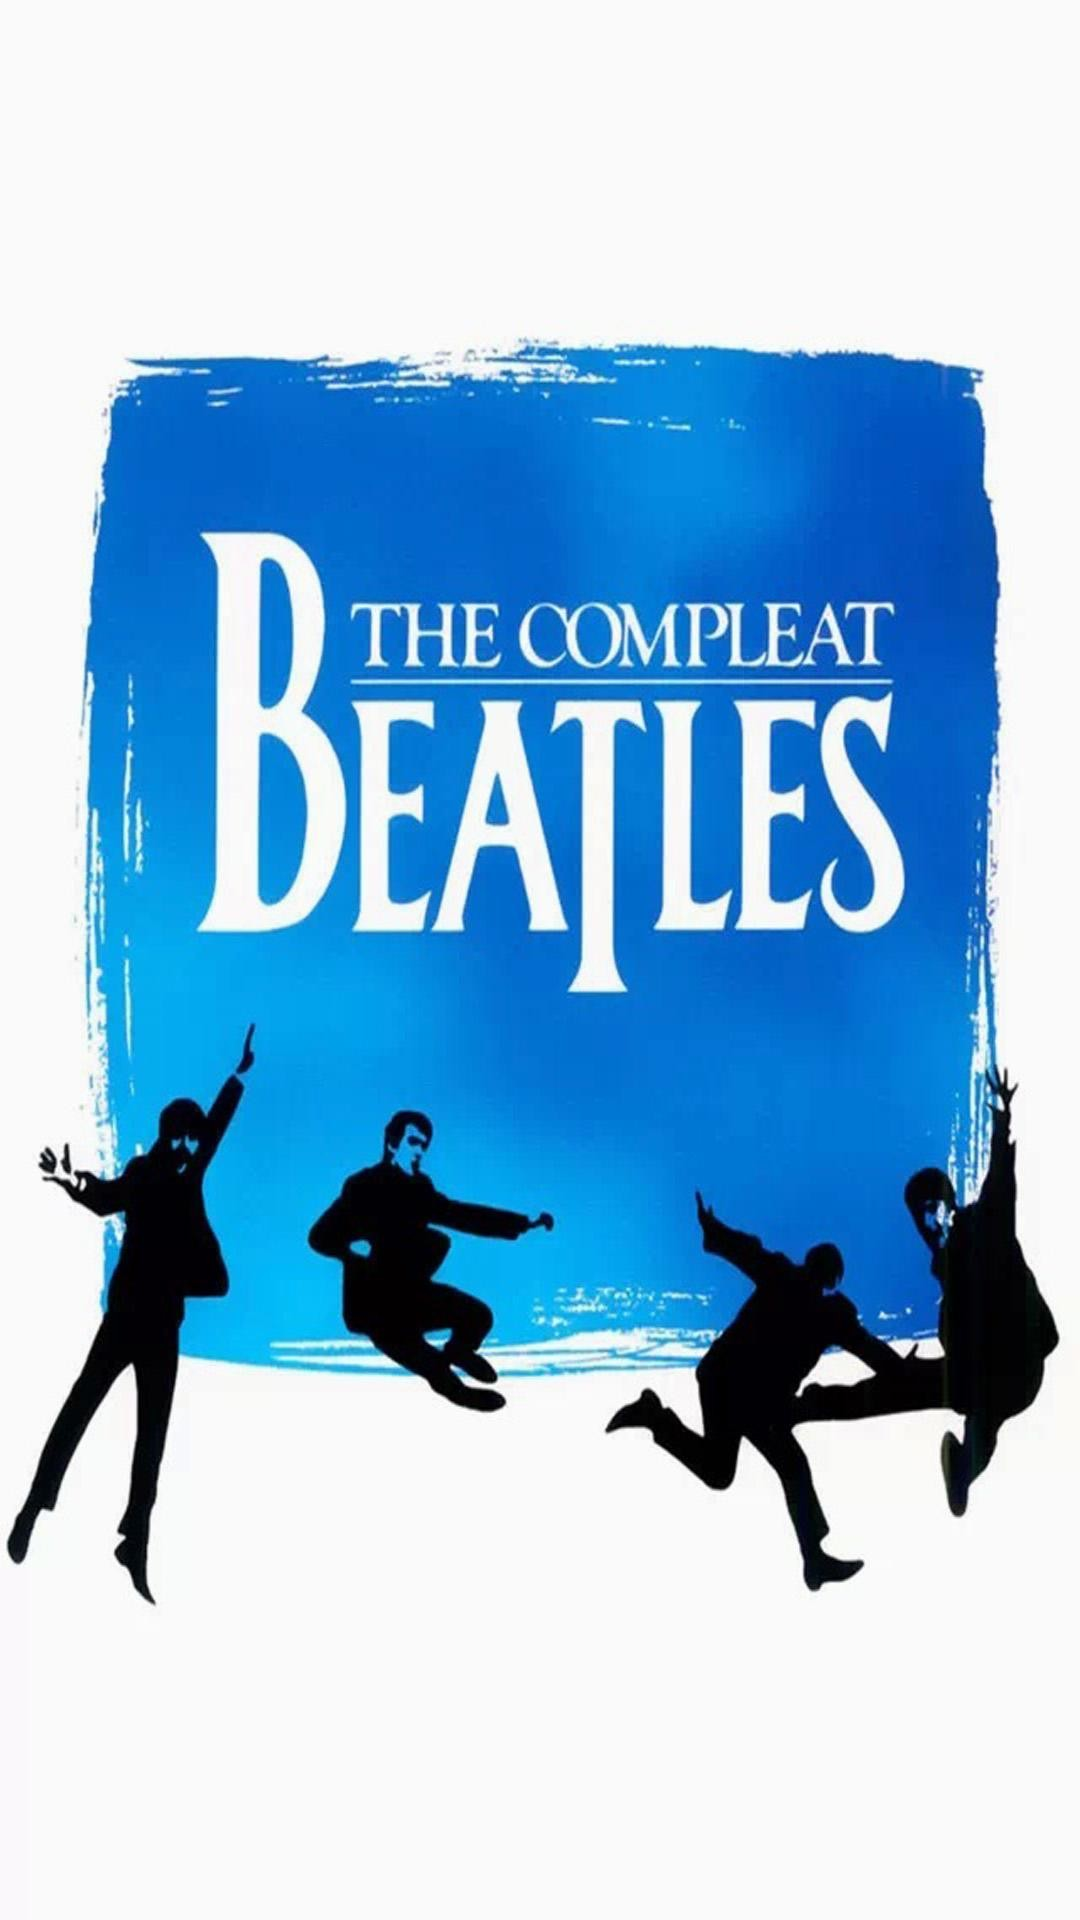 The Beatles iPhone Wallpapers (58 Wallpapers) – HD Wallpapers  |Beatles Iphone Wallpaper